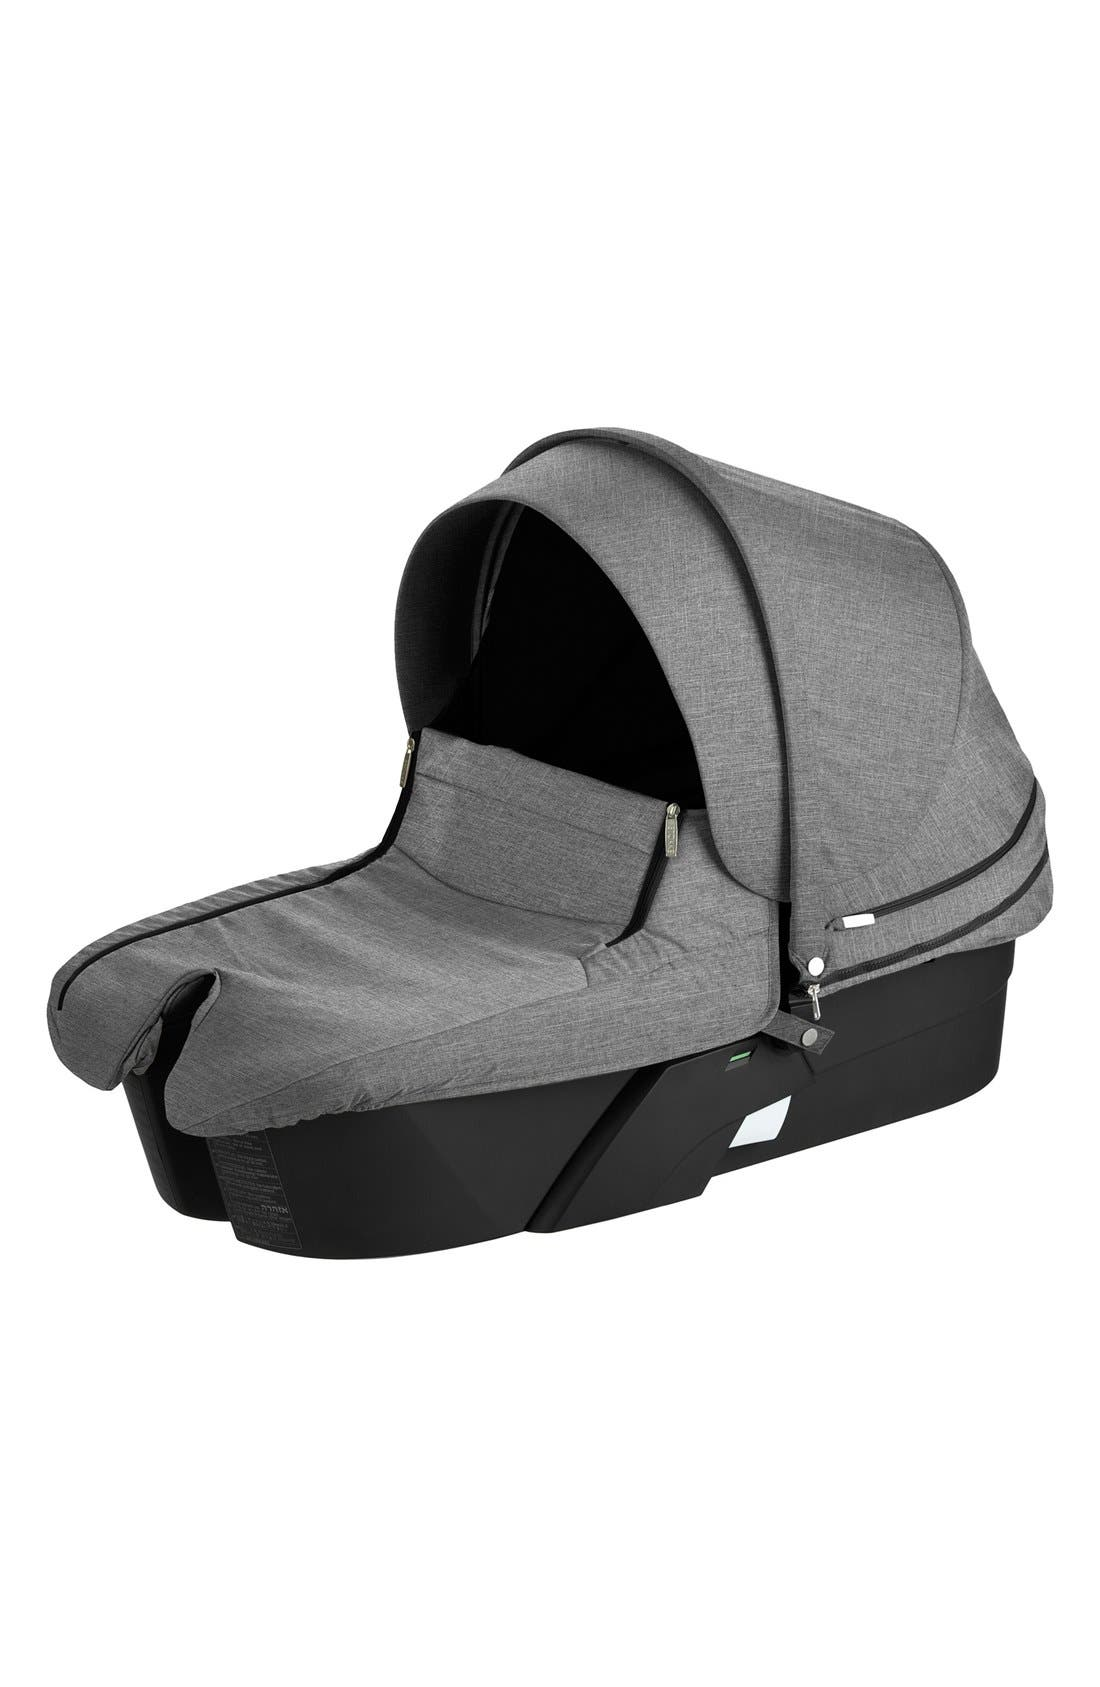 Xplory<sup>®</sup> Stroller Carry Cot,                             Main thumbnail 1, color,                             BLACK